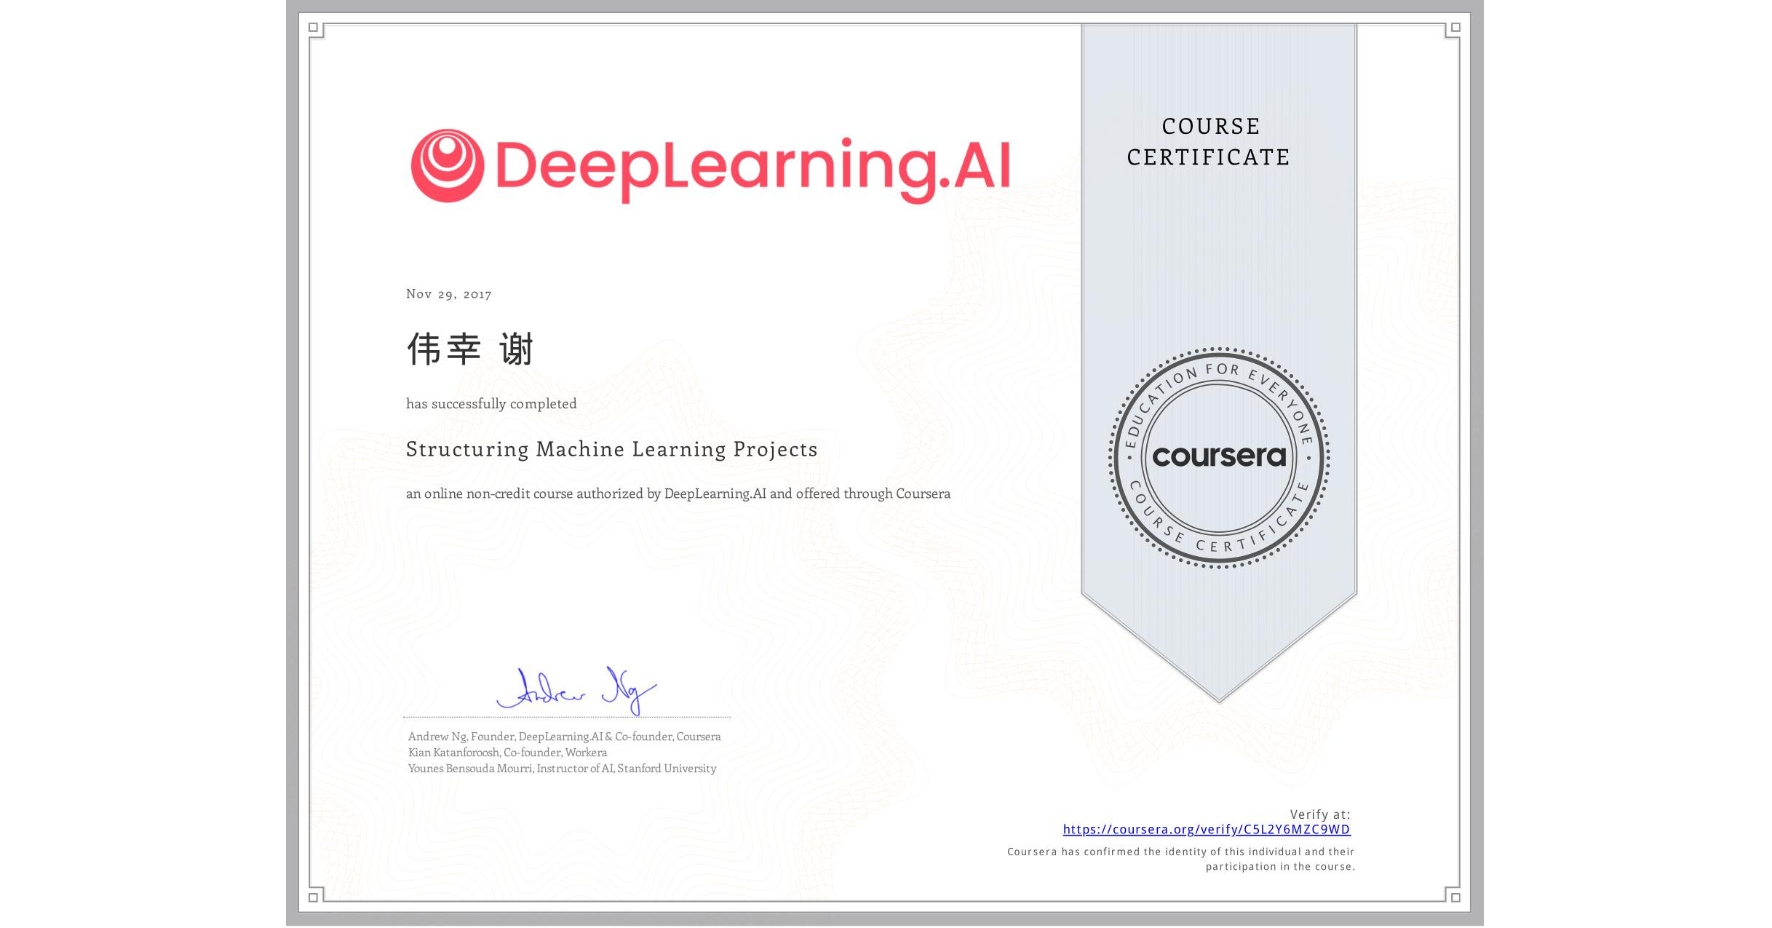 View certificate for 伟幸 谢, Structuring Machine Learning Projects, an online non-credit course authorized by DeepLearning.AI and offered through Coursera